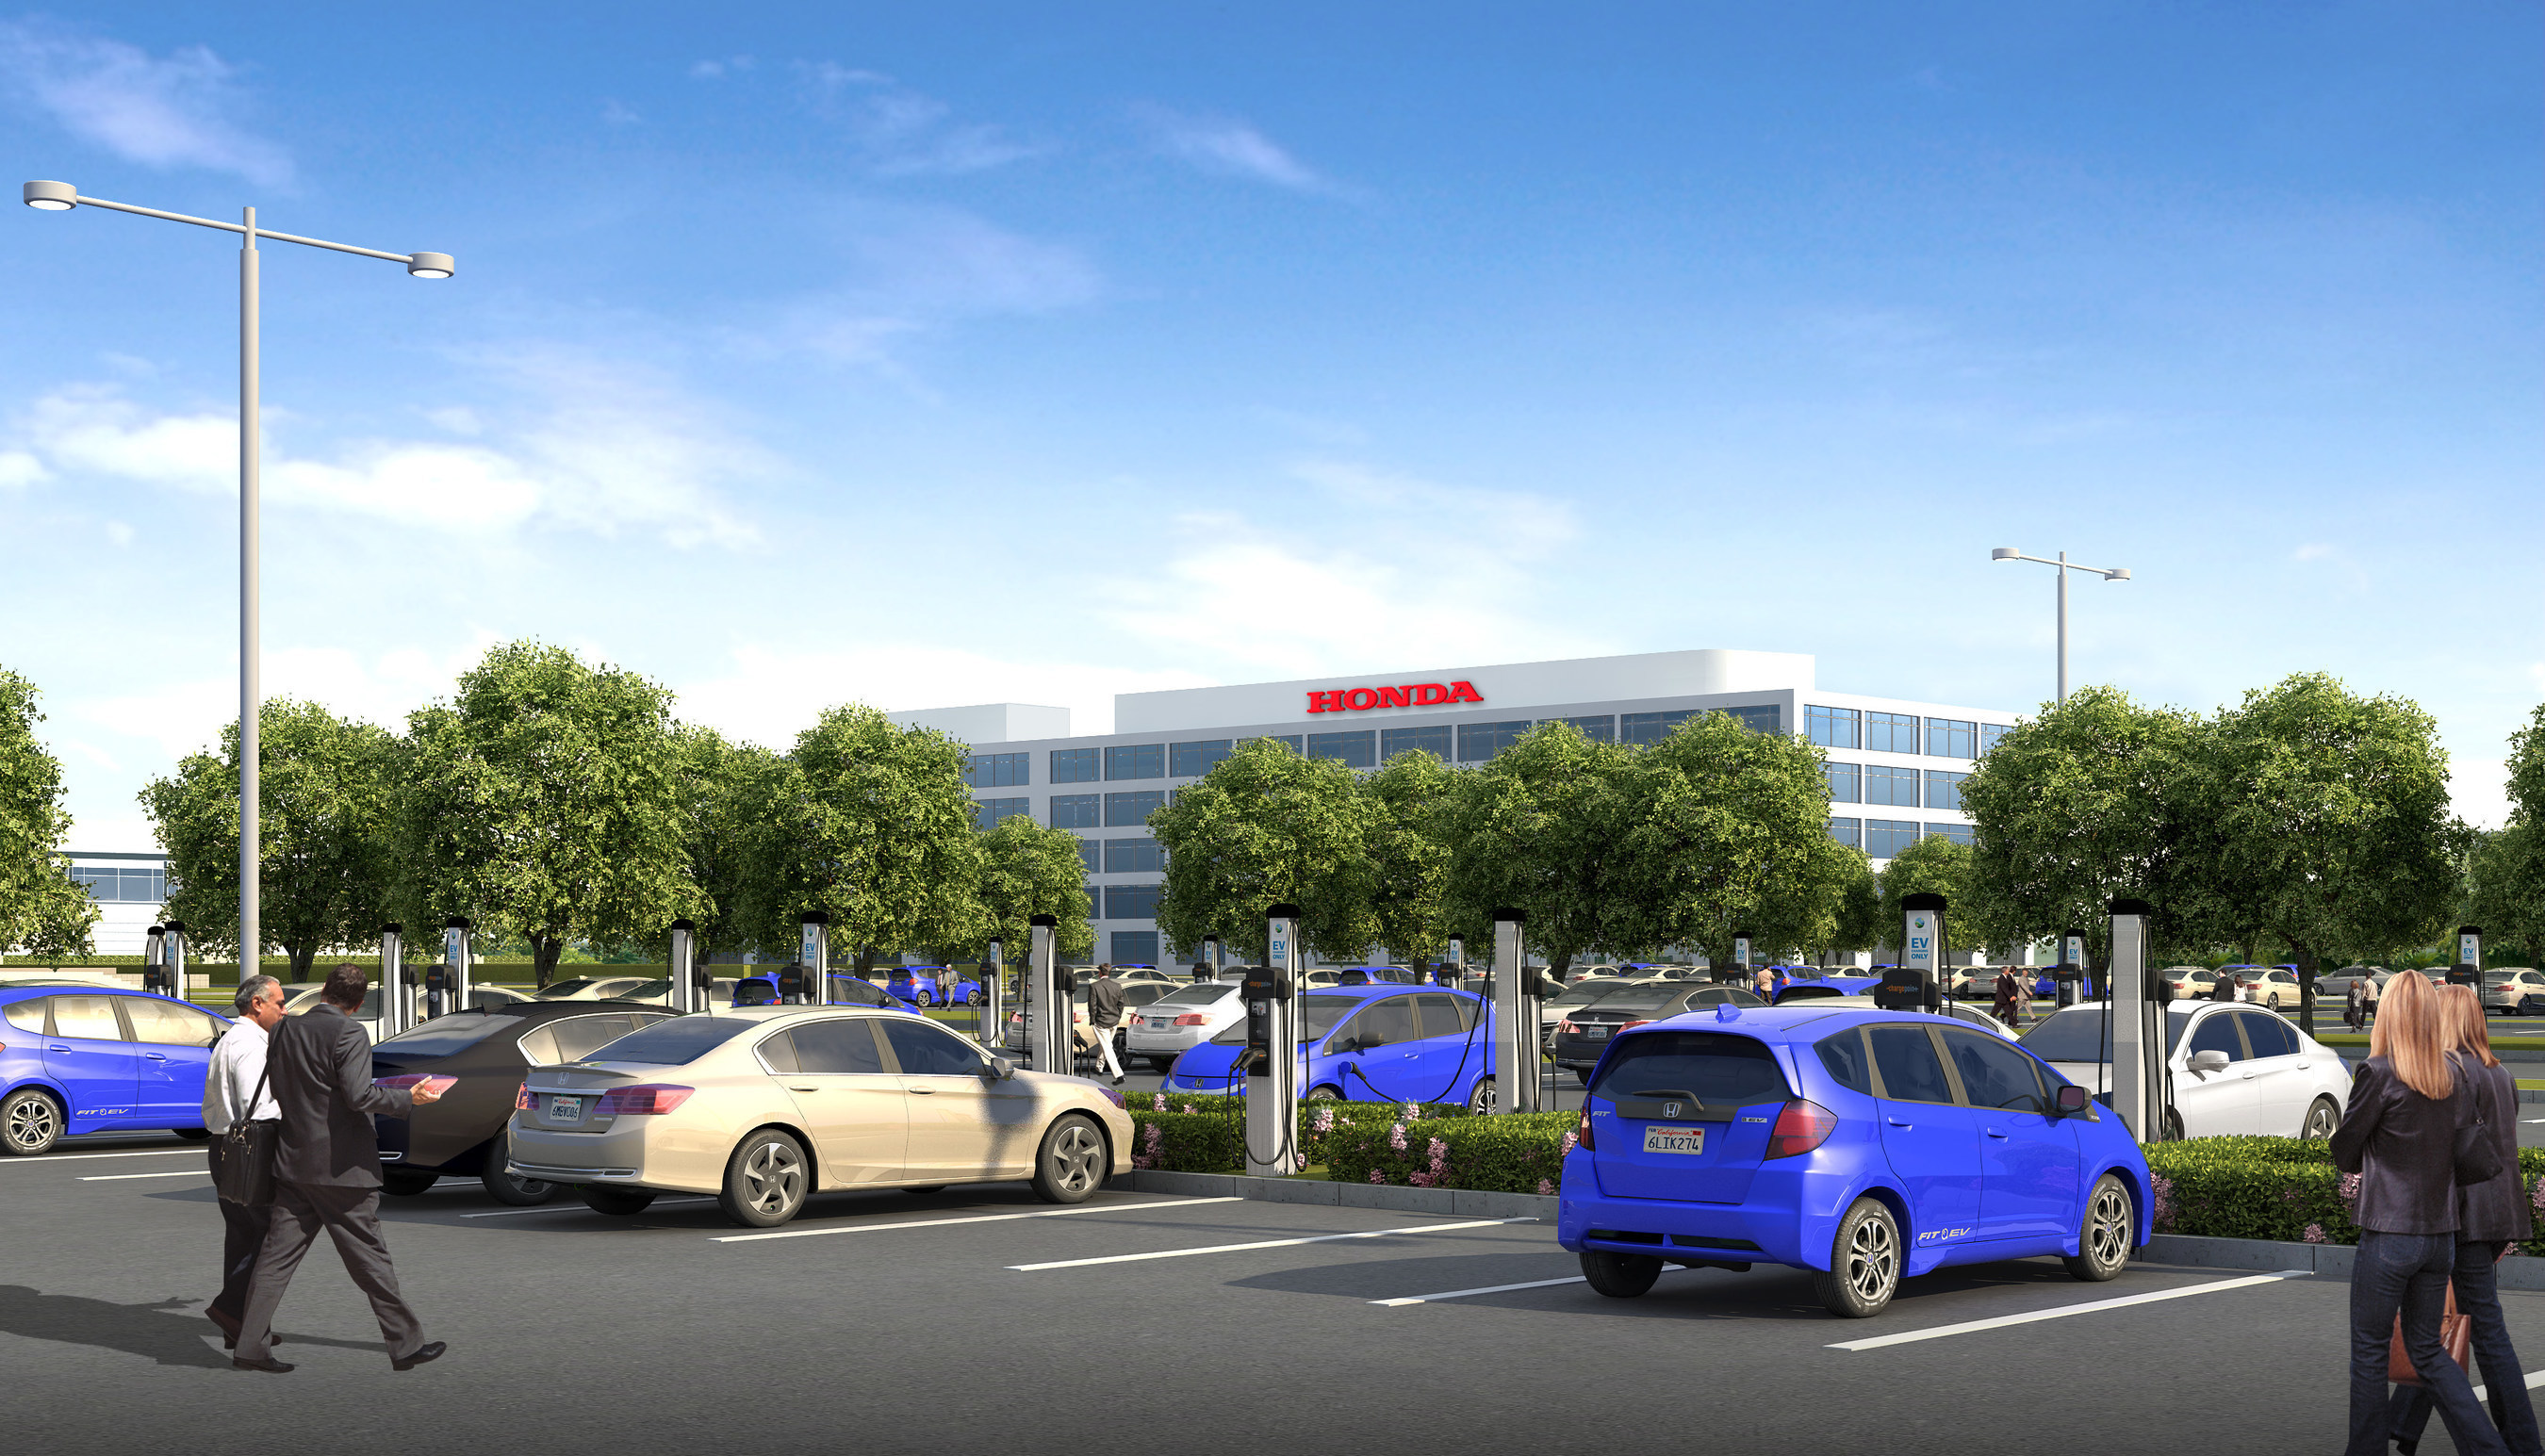 Honda is installing 120 EV chargers at the Torrance, CA headquarters of American Honda.